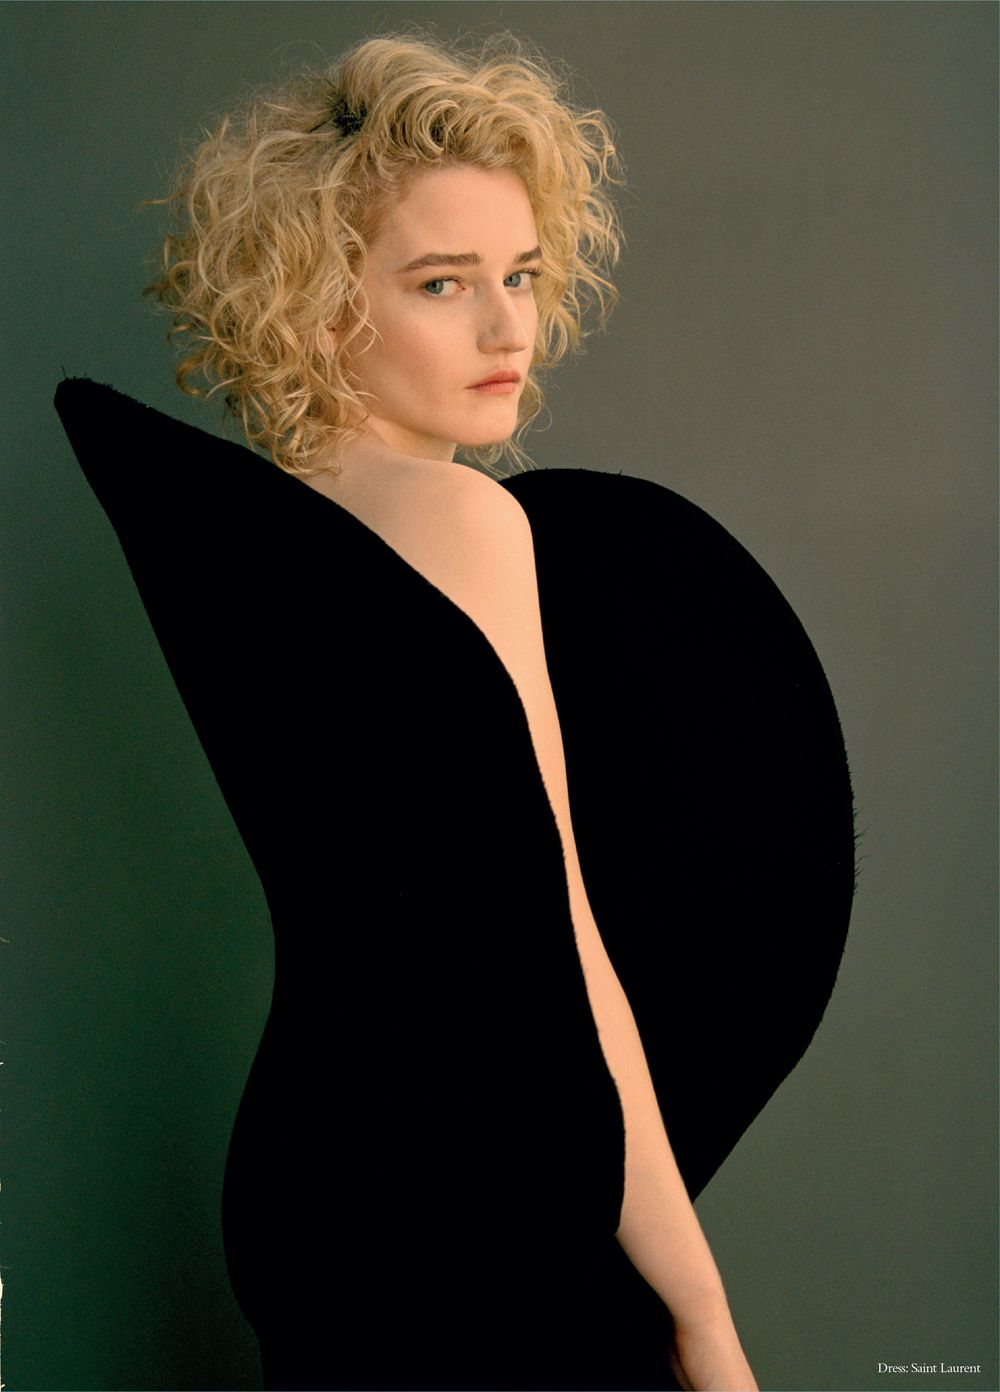 Julia Garner Nudes Youtube, Is A Cute Paparazzi